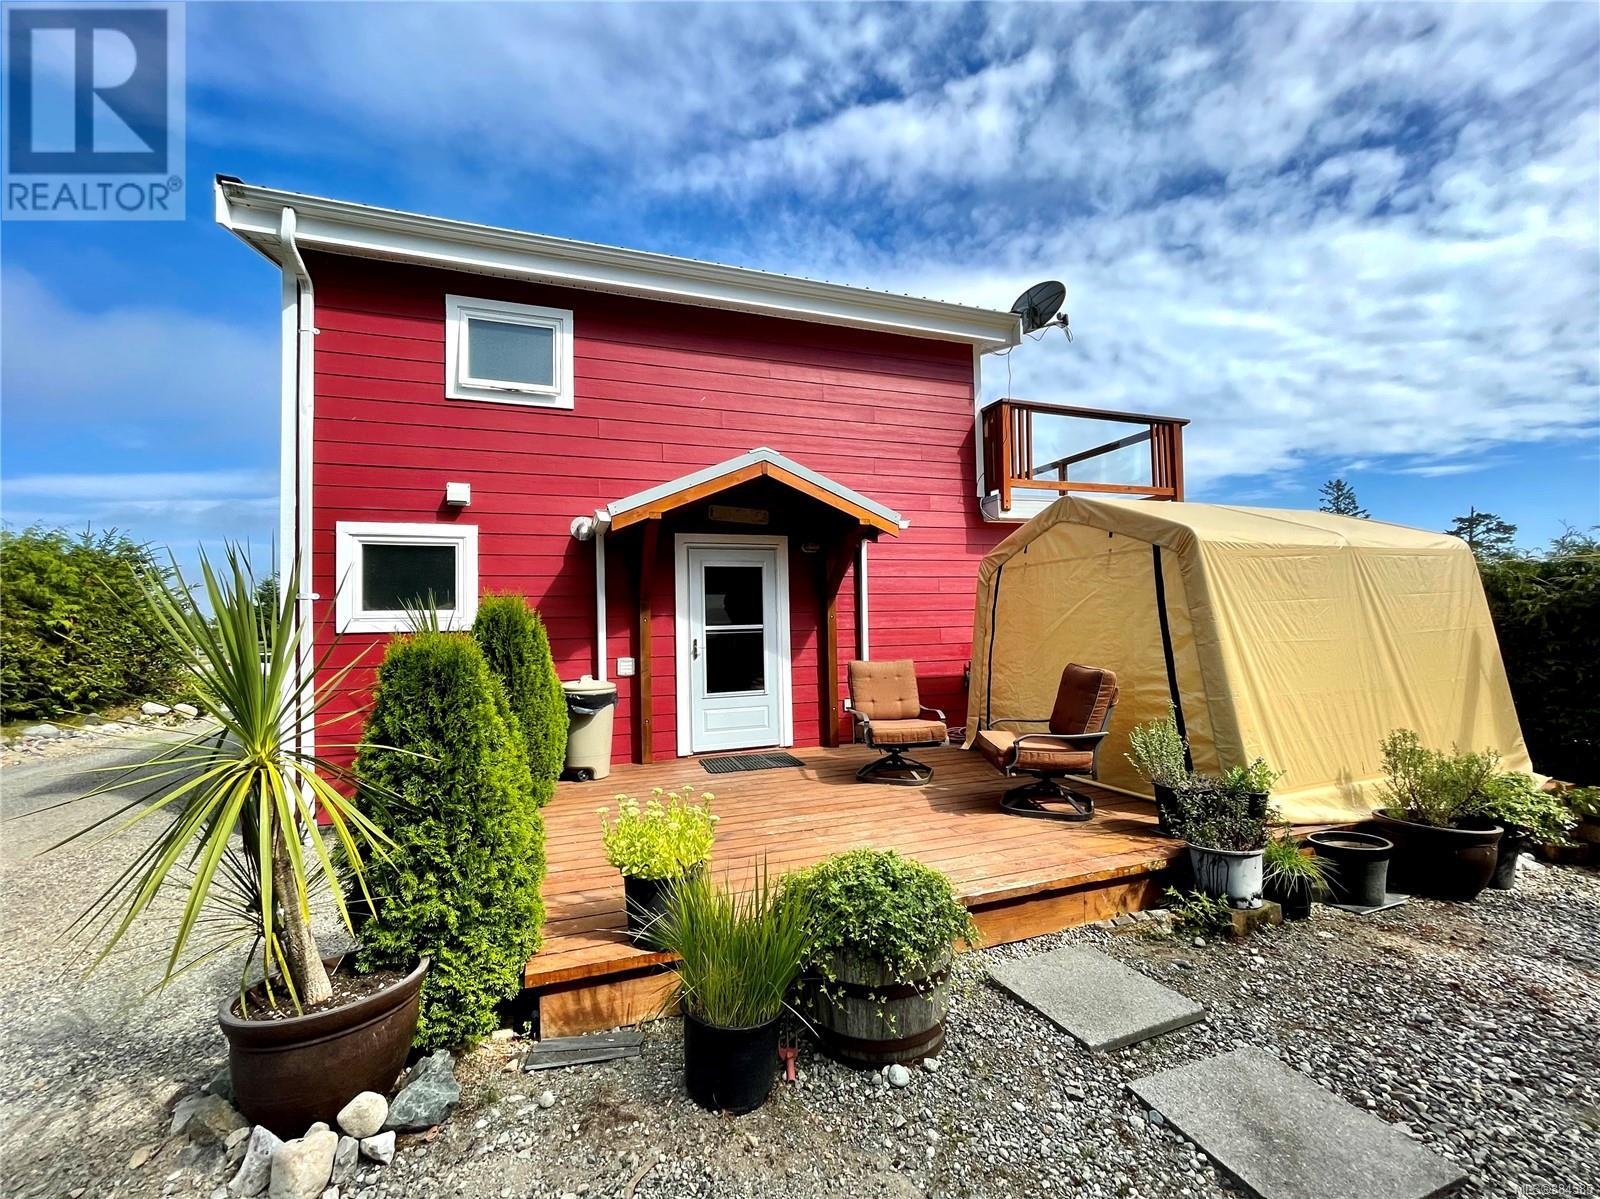 MLS® #884585 - Ucluelet House For sale Image #25